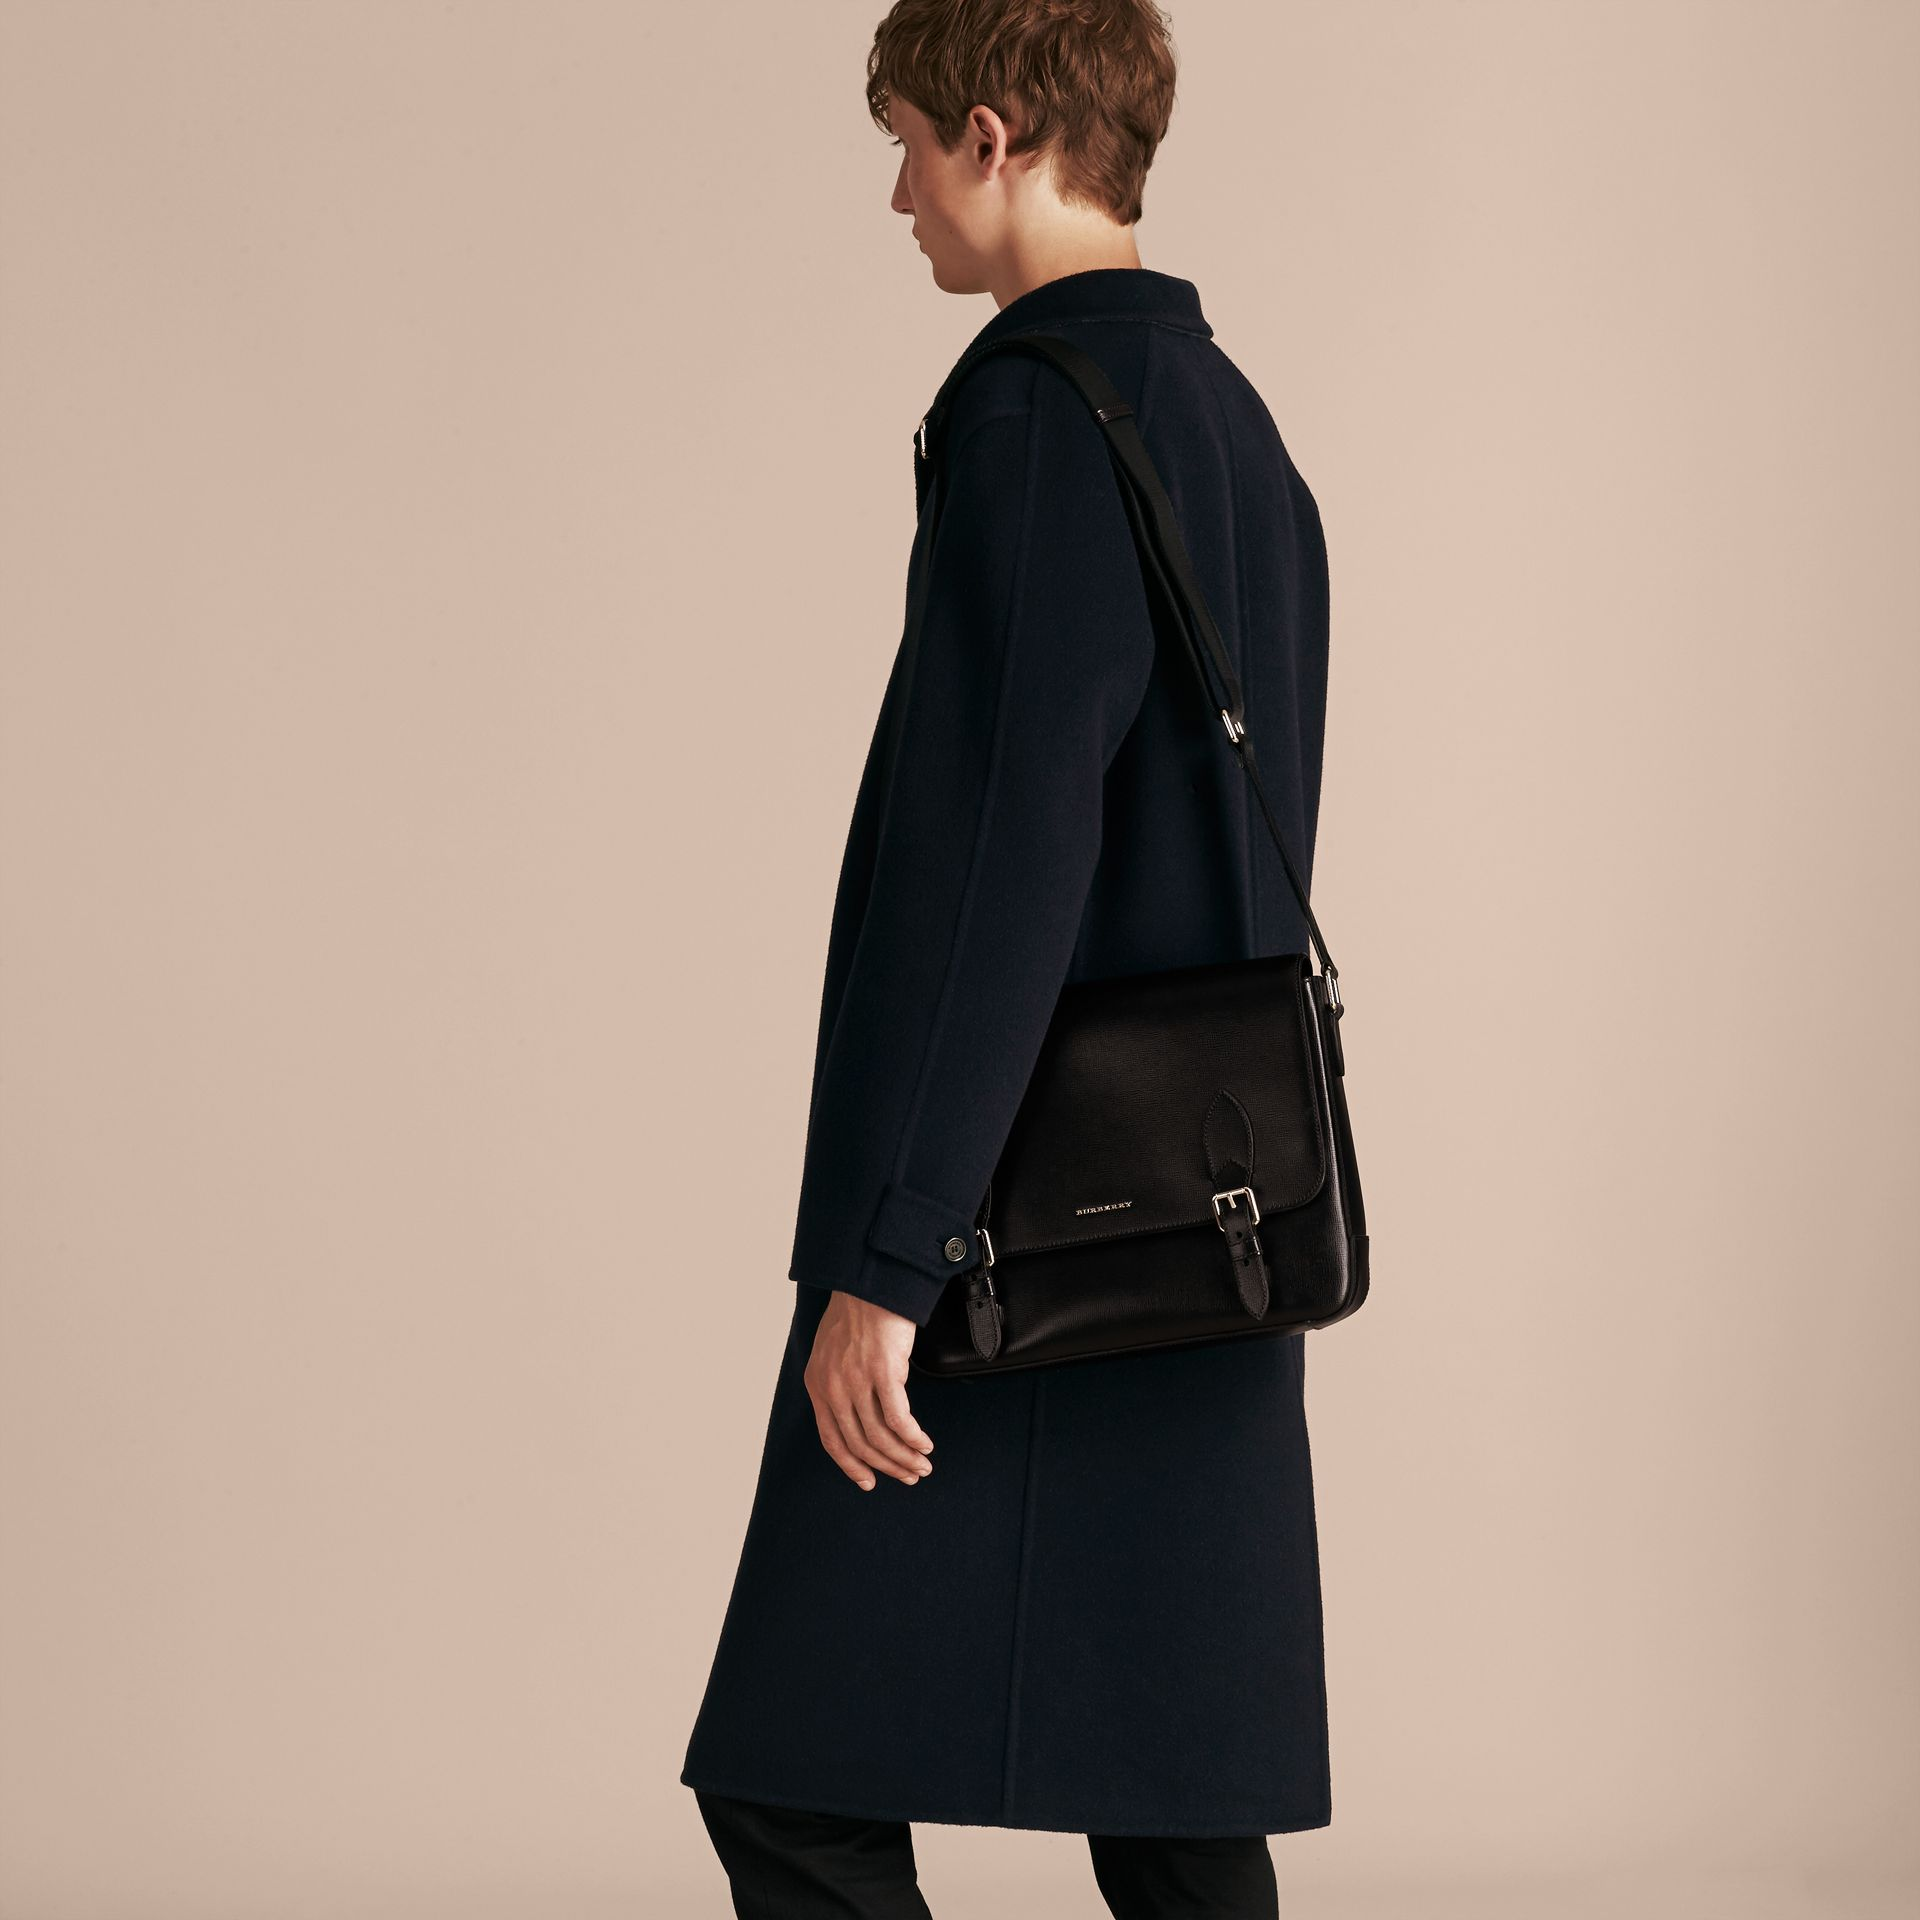 Medium London Leather Messenger Bag in Black - Men | Burberry - gallery image 3